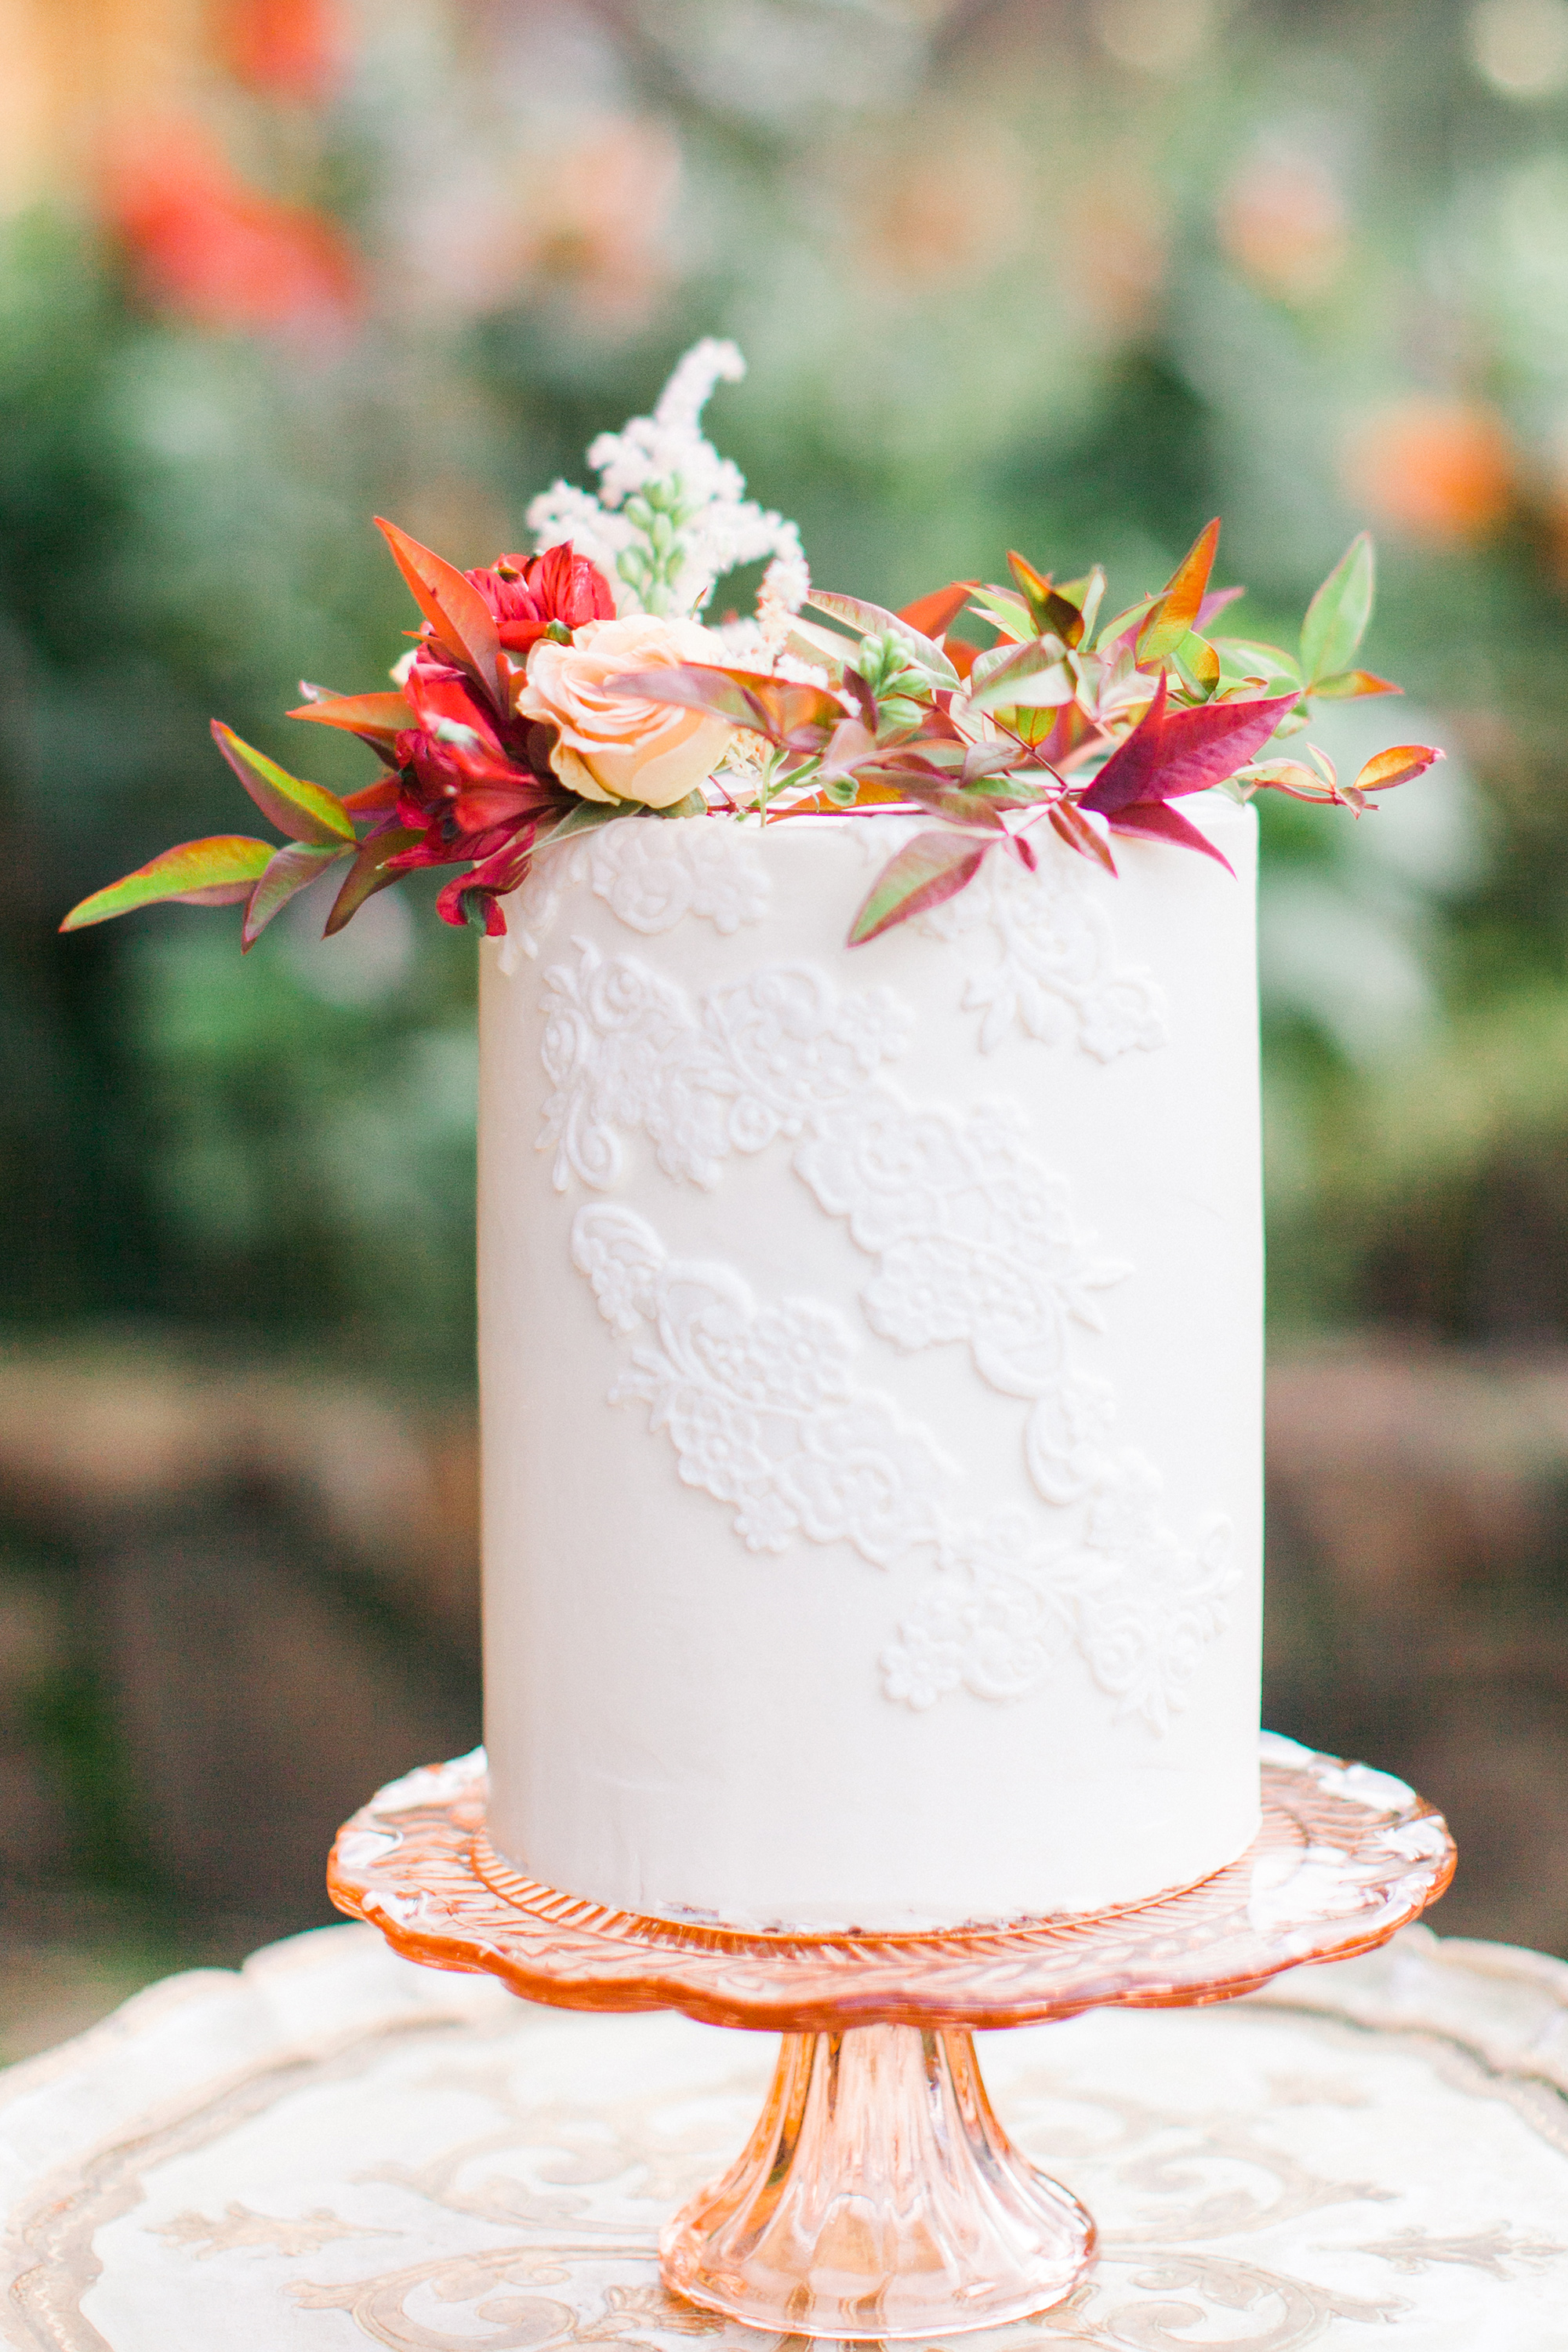 Single-Tier Wedding Cake with Lace Detail and Seasonal flowers, Fall Wedding ideas